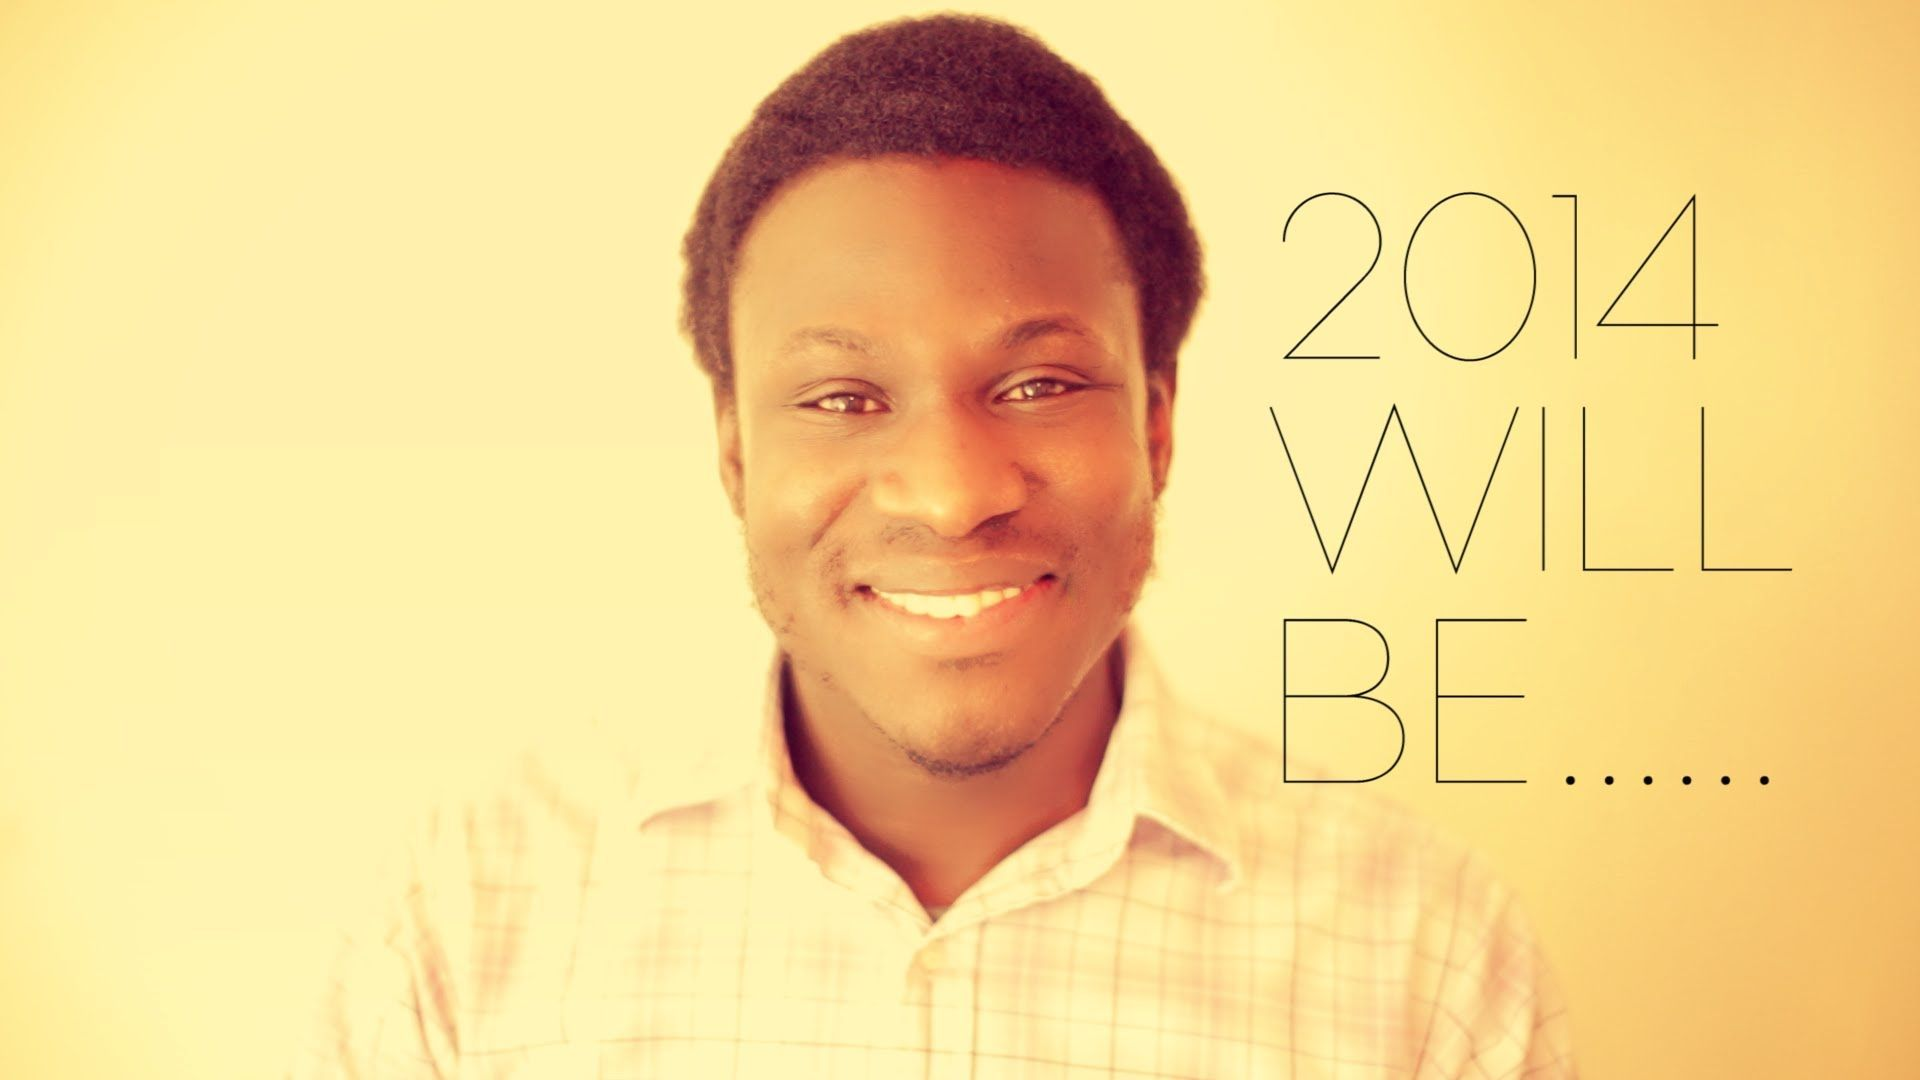 How to Make 2014 A Better Year